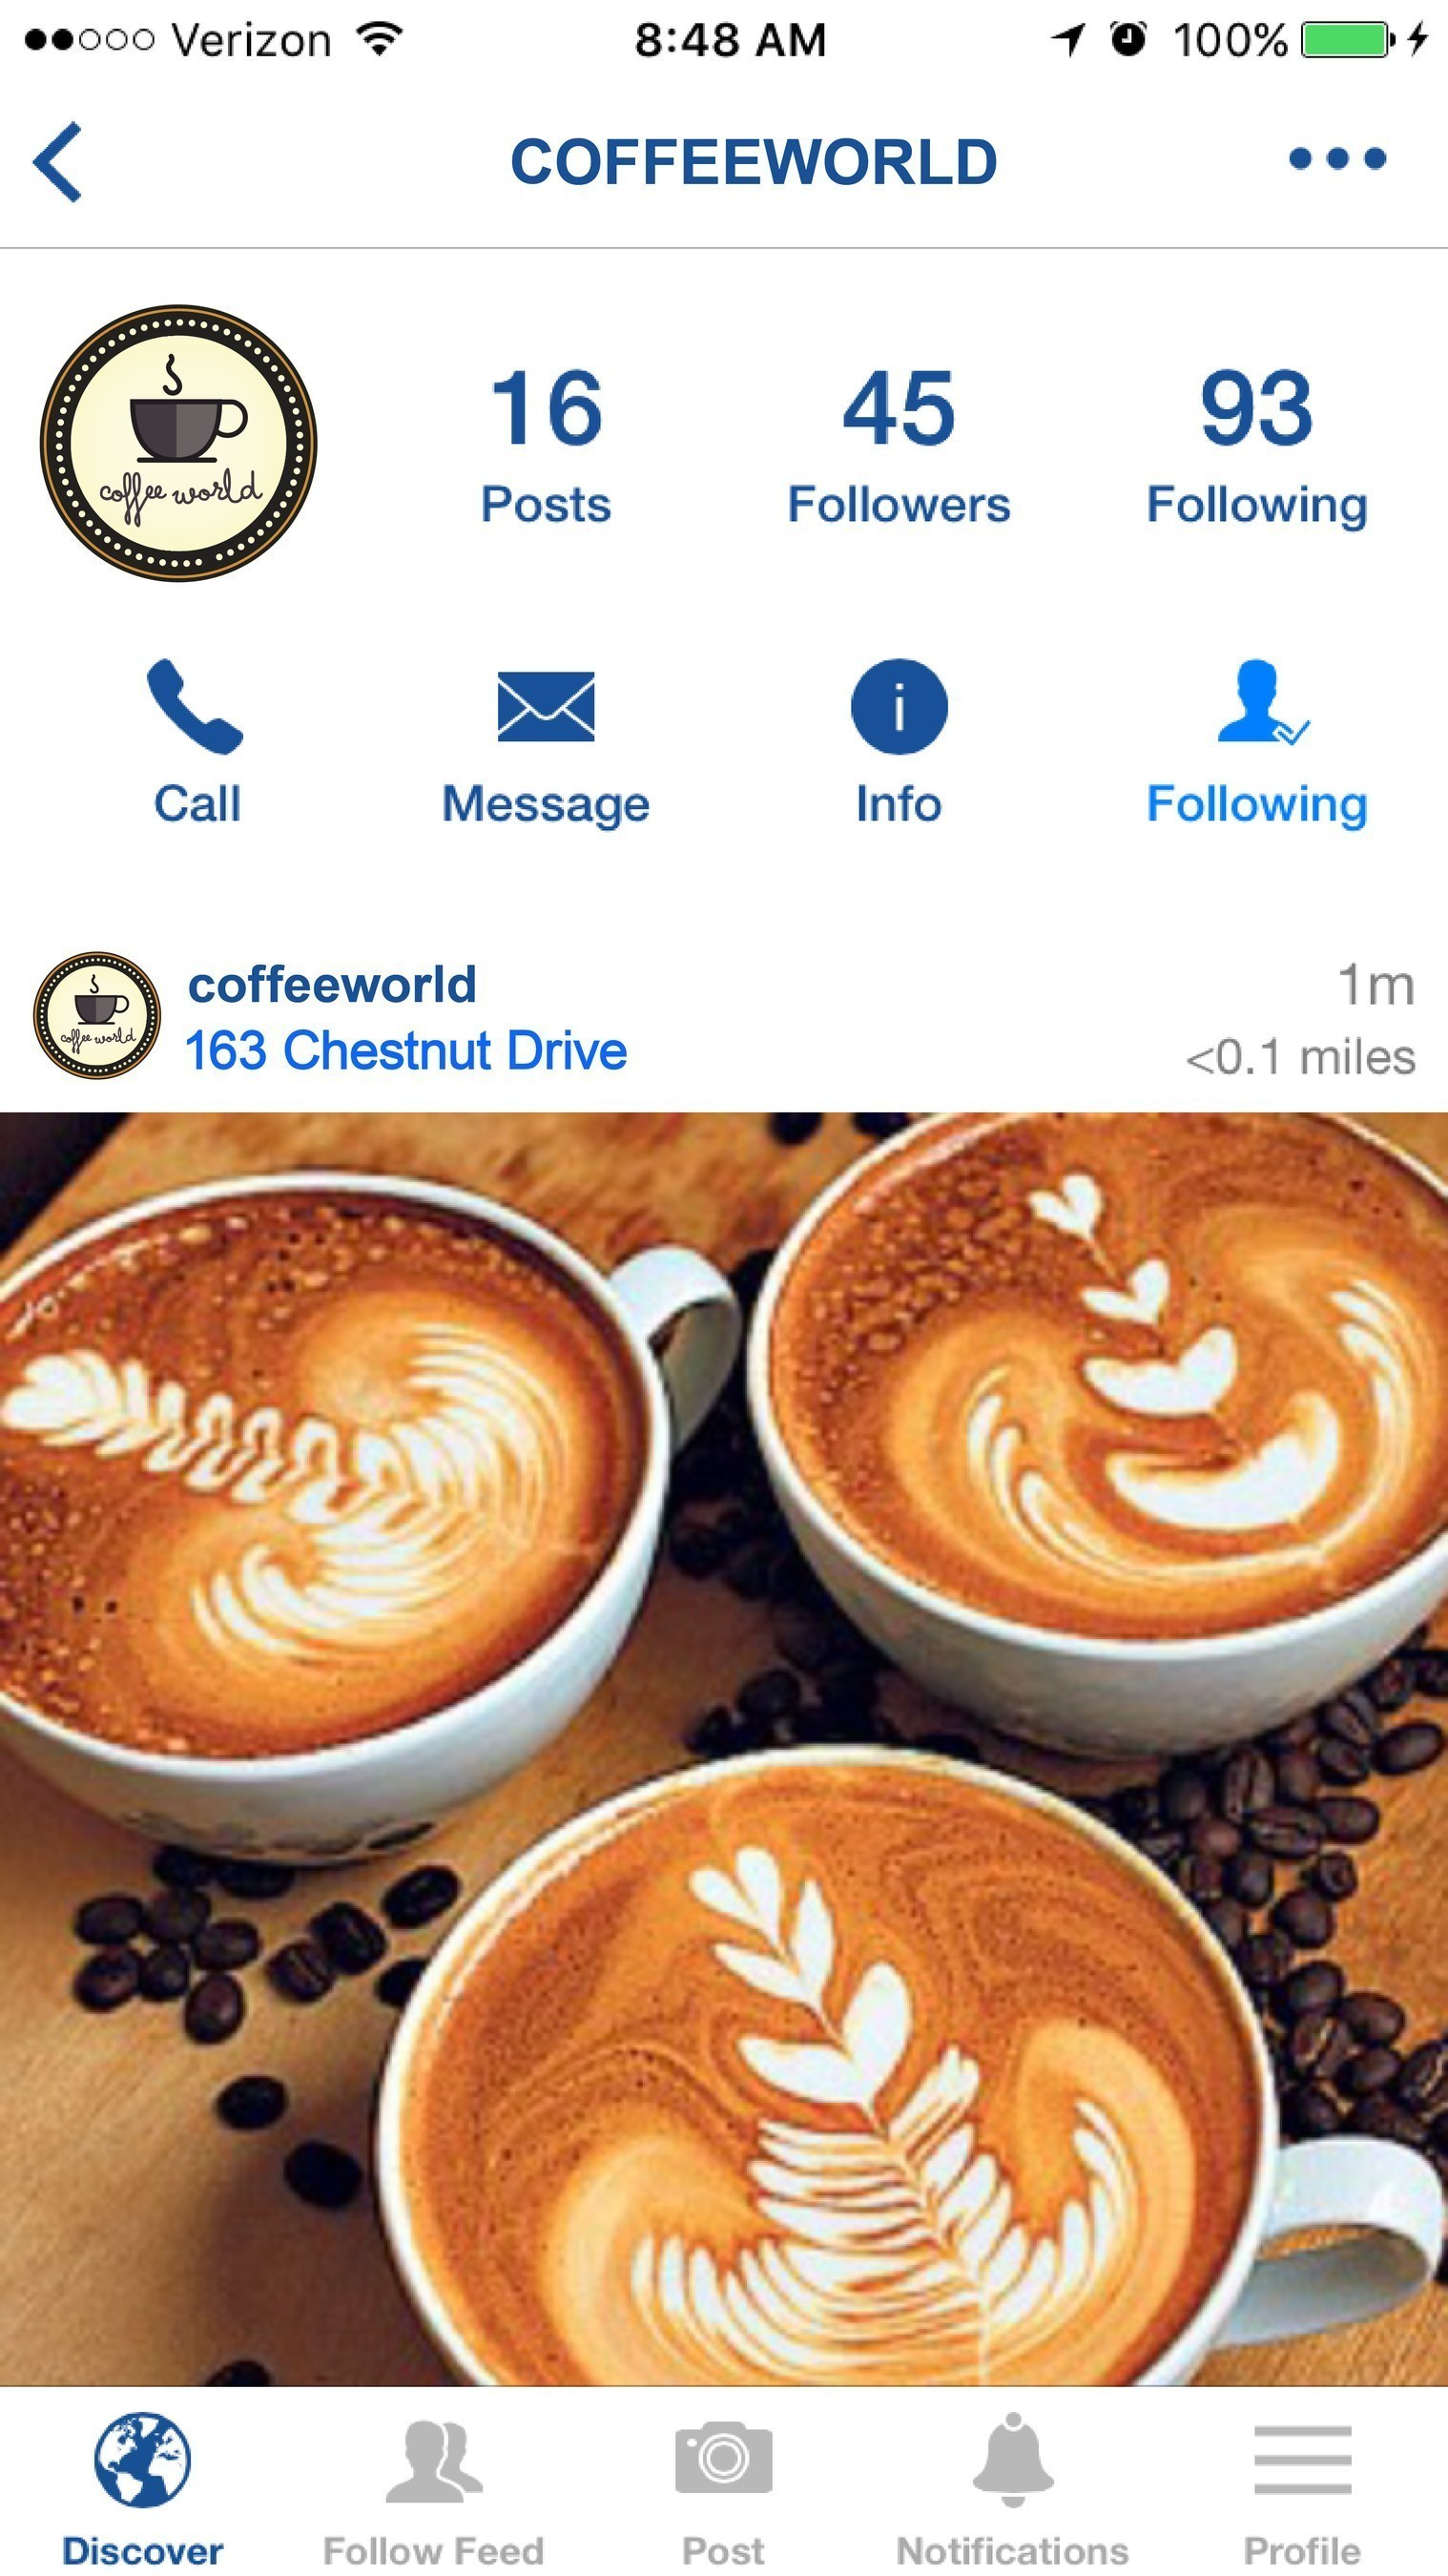 ILGOS, Real-Time Local Sharing and Discovery App, Now Available on the Apple App Store